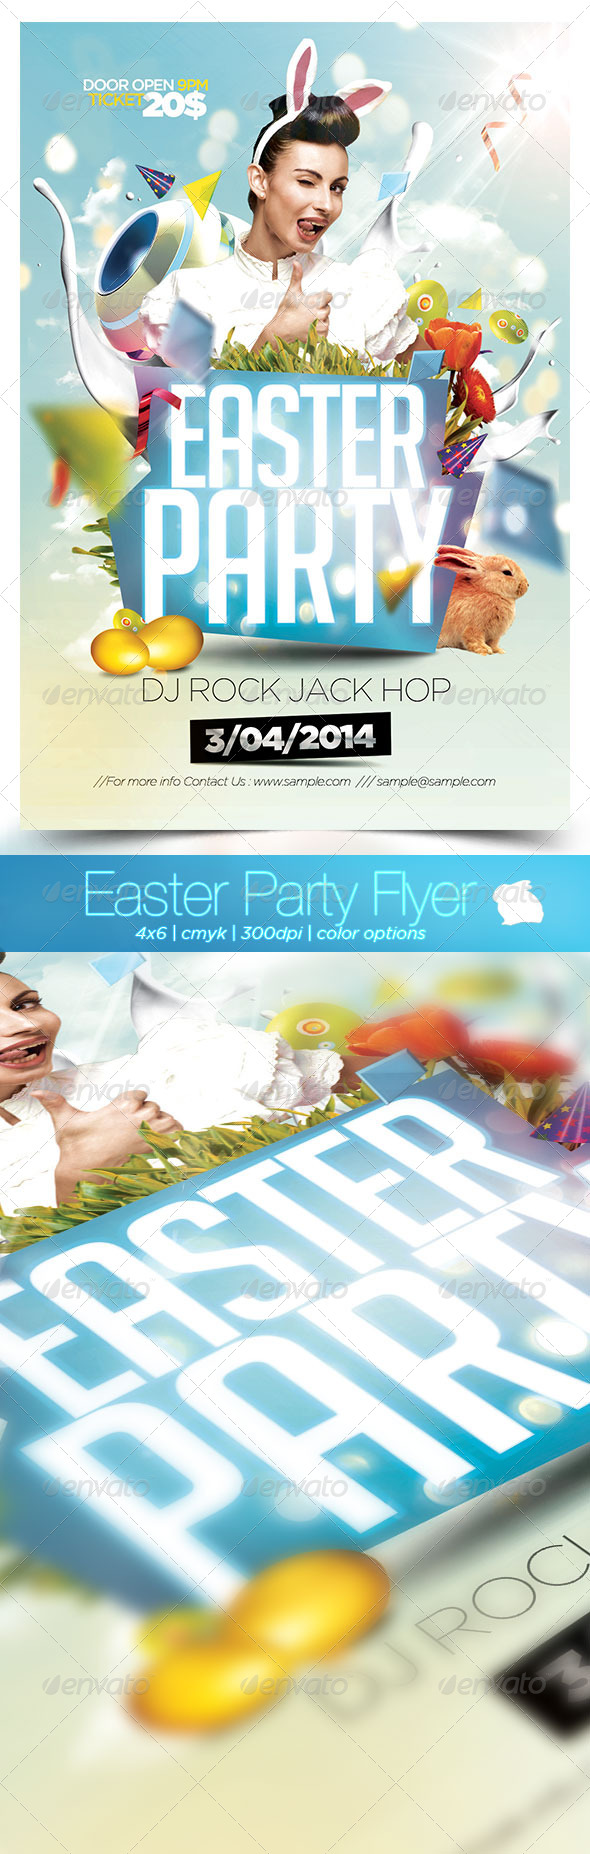 GraphicRiver Easter Party Flyer 2014 7215165